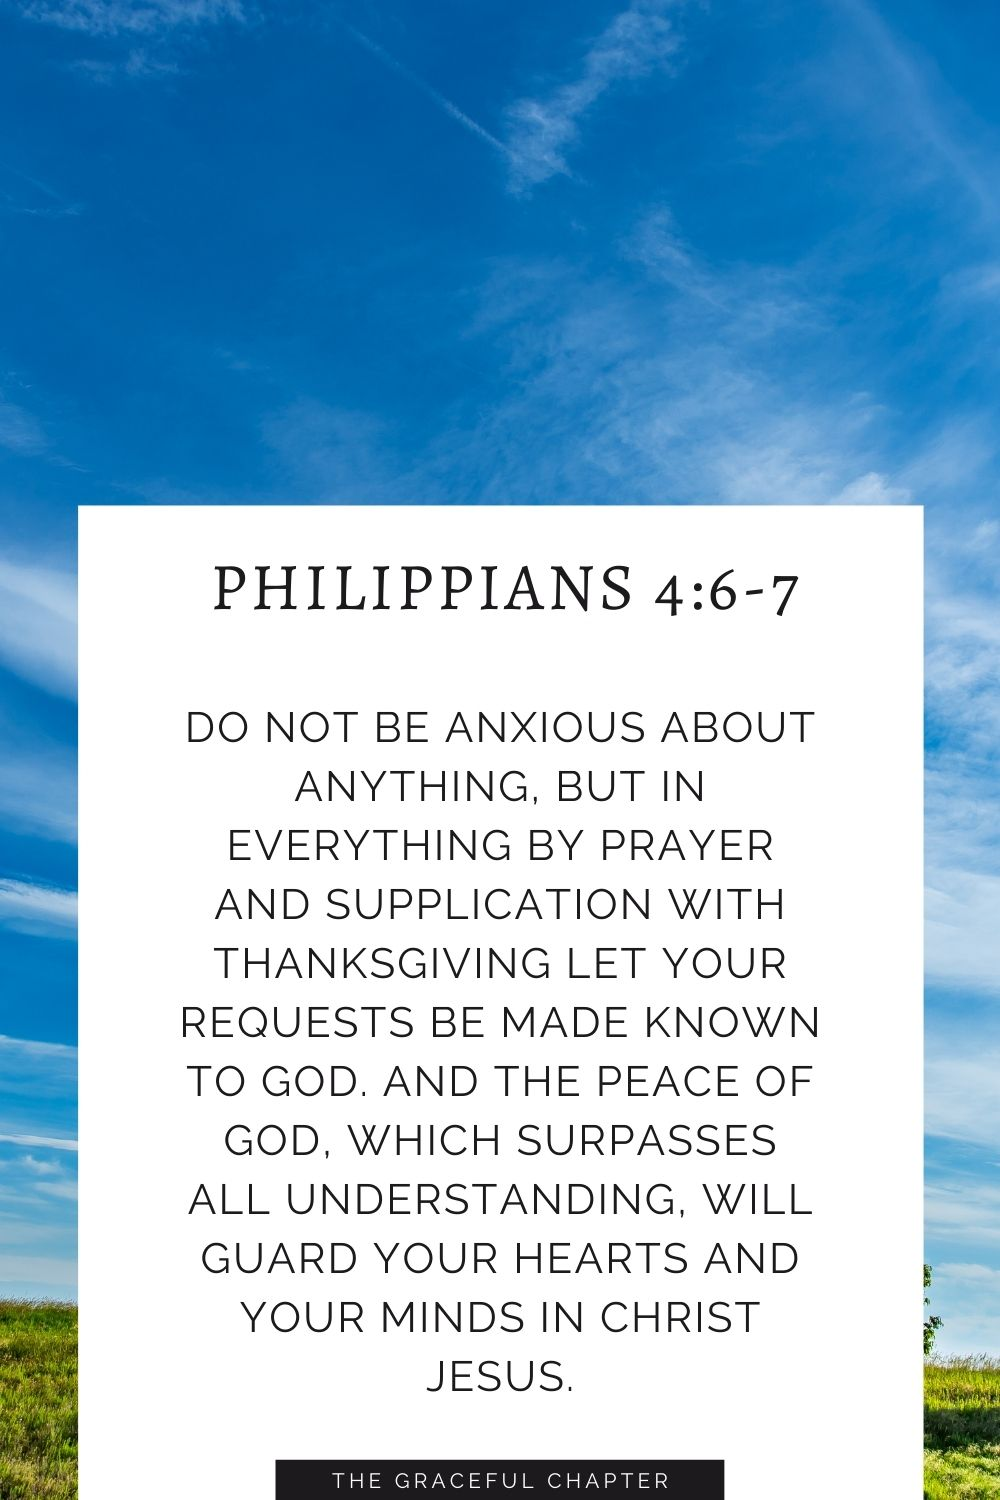 Do not be anxious about anything, but in everything by prayer and supplication with thanksgiving let your requests be made known to God. And the peace of God, which surpasses all understanding, will guard your hearts and your minds in Christ Jesus. Philippians 4:6-7